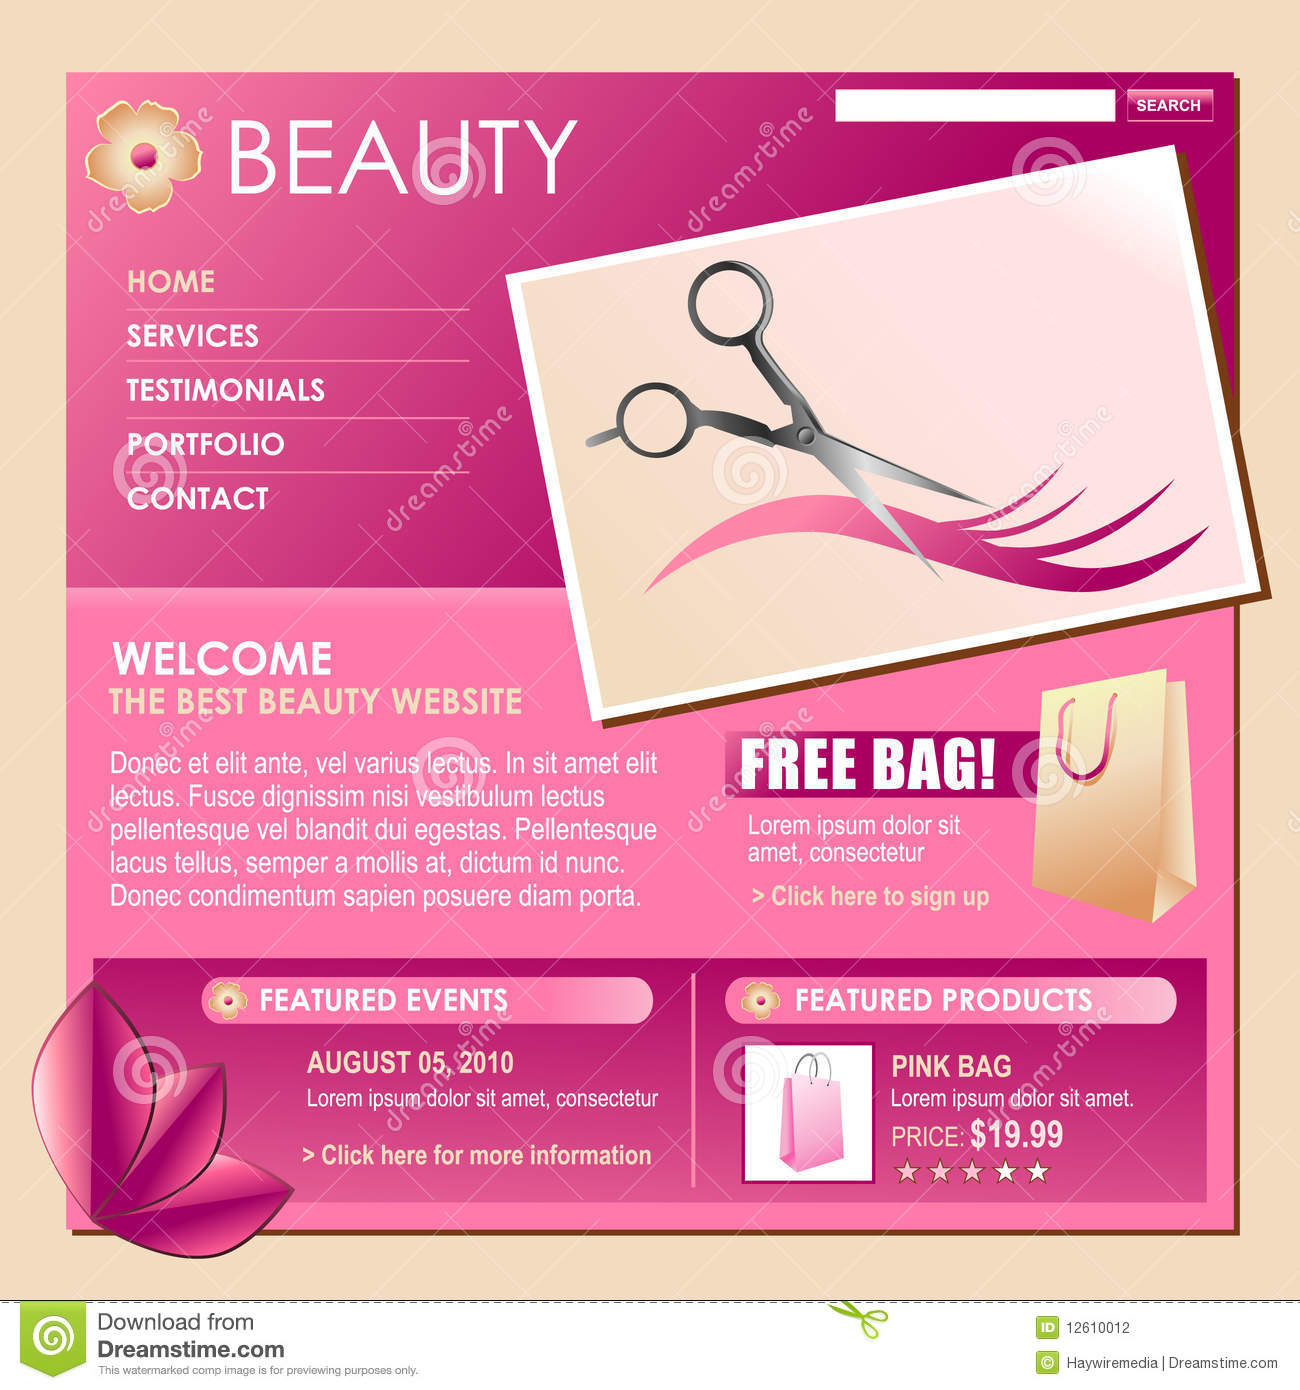 Beauty salon business cards templates free intellego beauty salon business cards templates free beauty style hair businessbeauty salon business cards templates free cheaphphosting Image collections